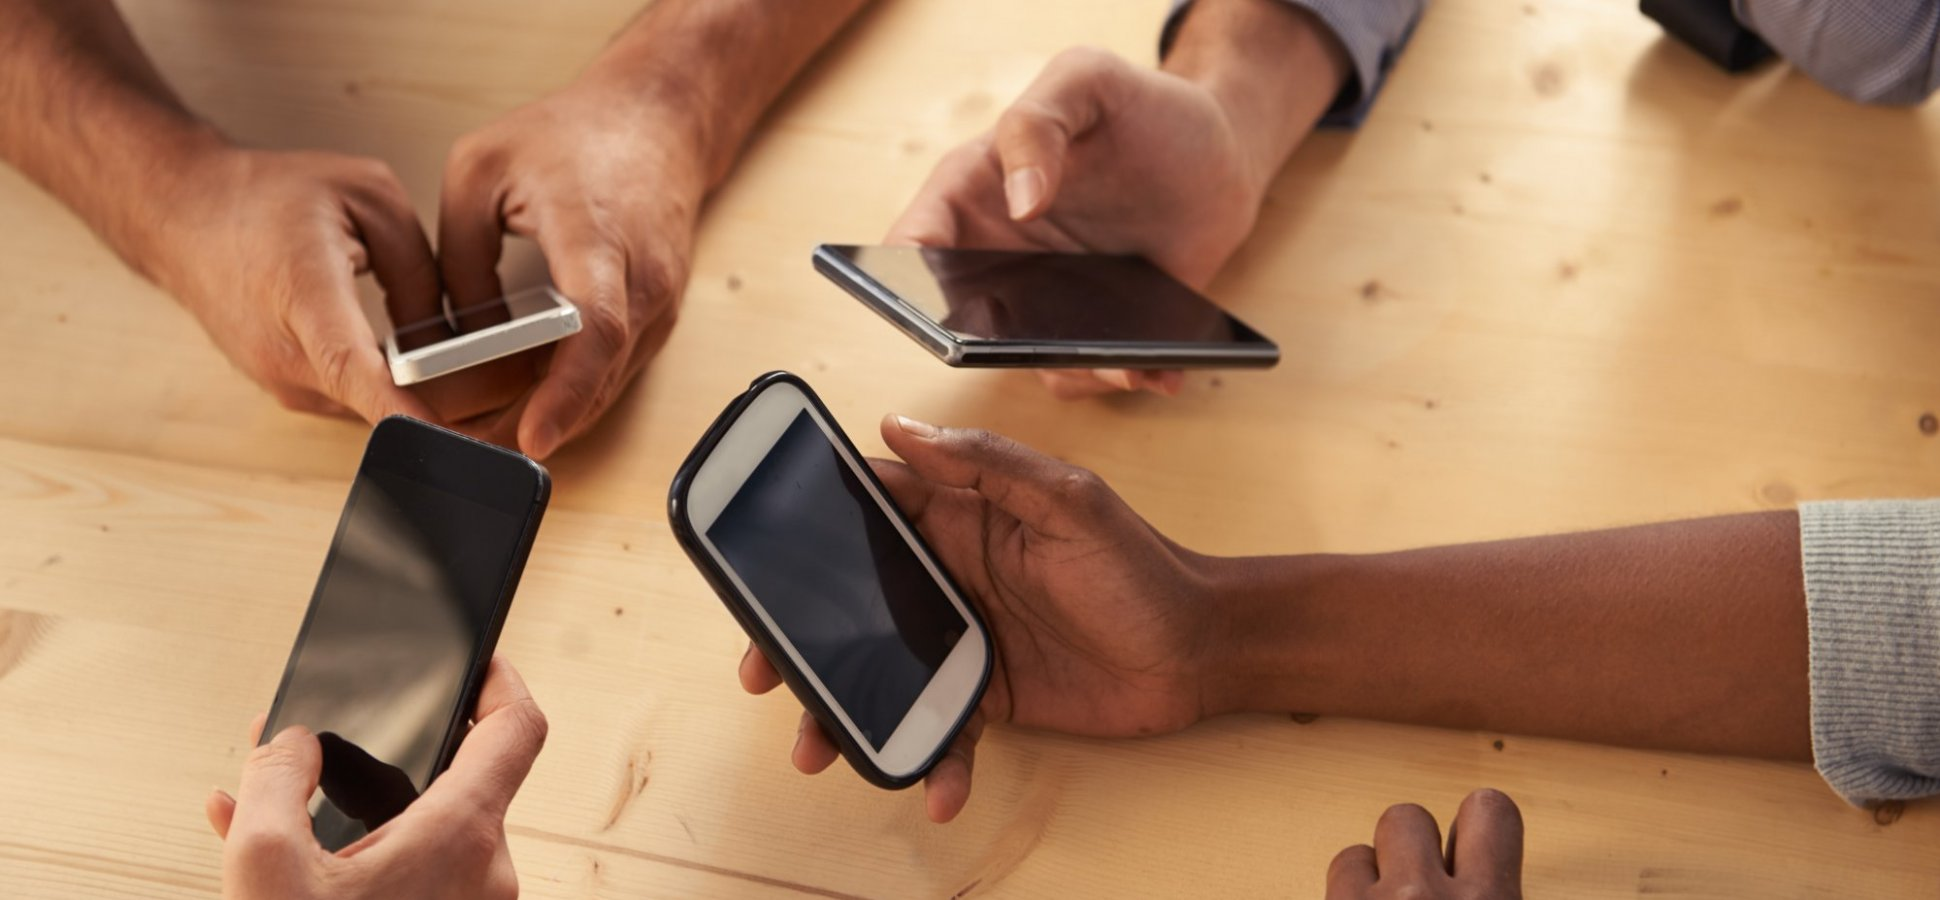 Buy All Your Employees a Smartphone. Your Job Might Depend on It